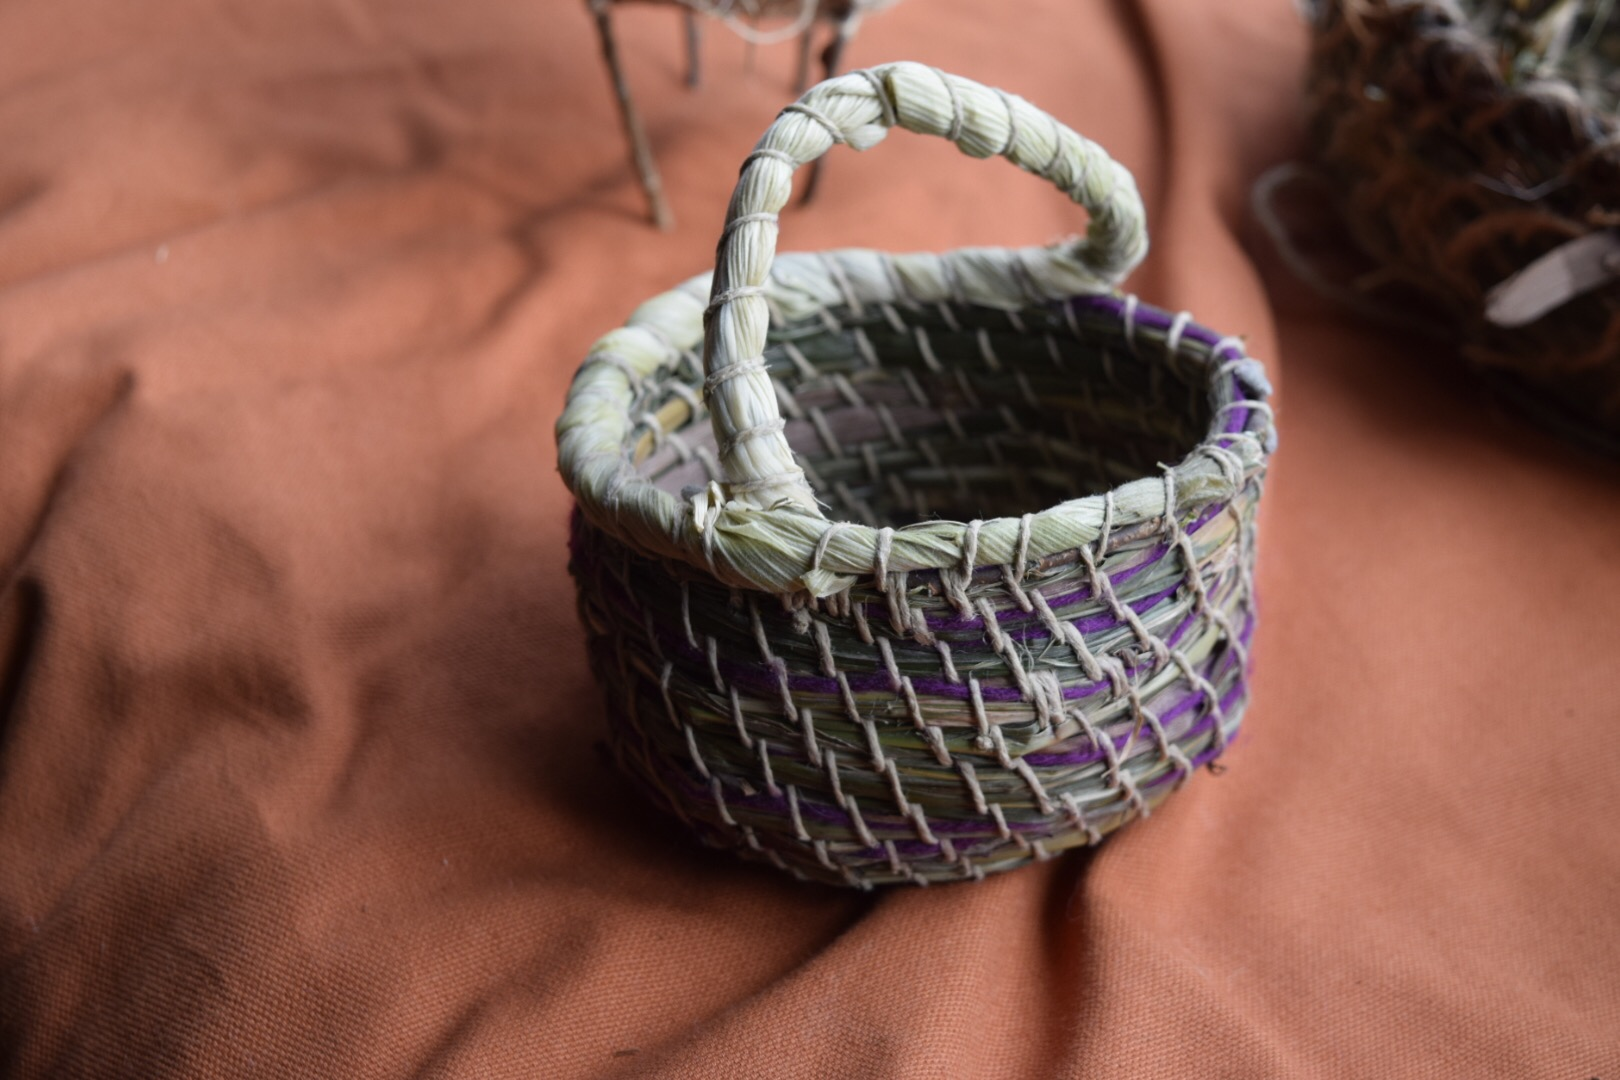 Backyard Basketry: Coiling with Grasses, Cattails, and More - SOLD OUT